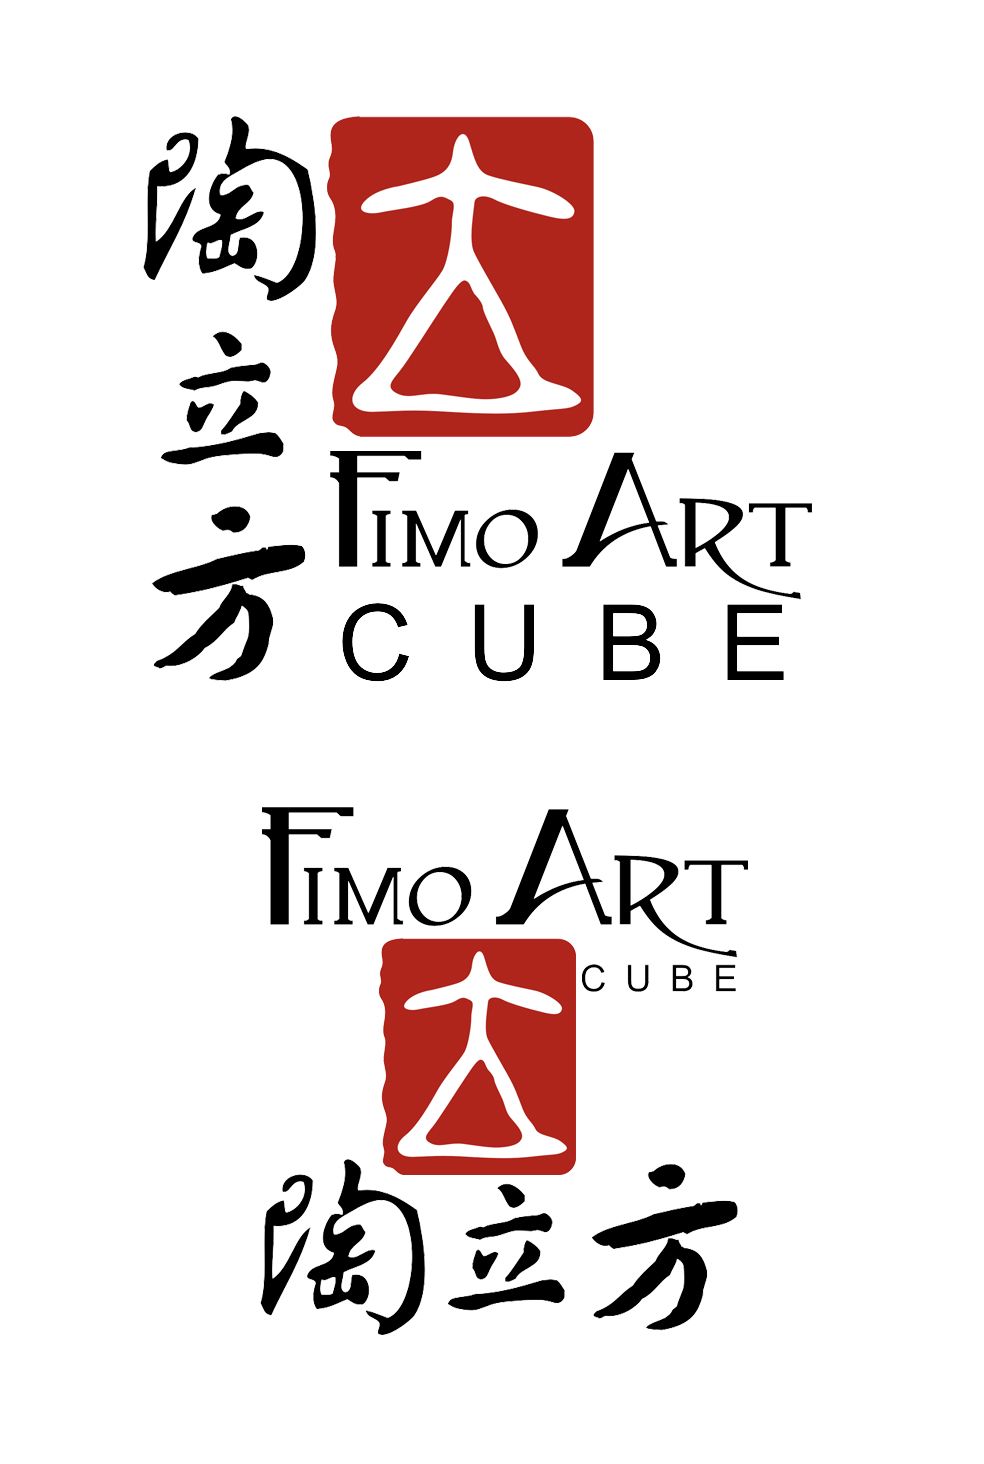 Logo Arrangement